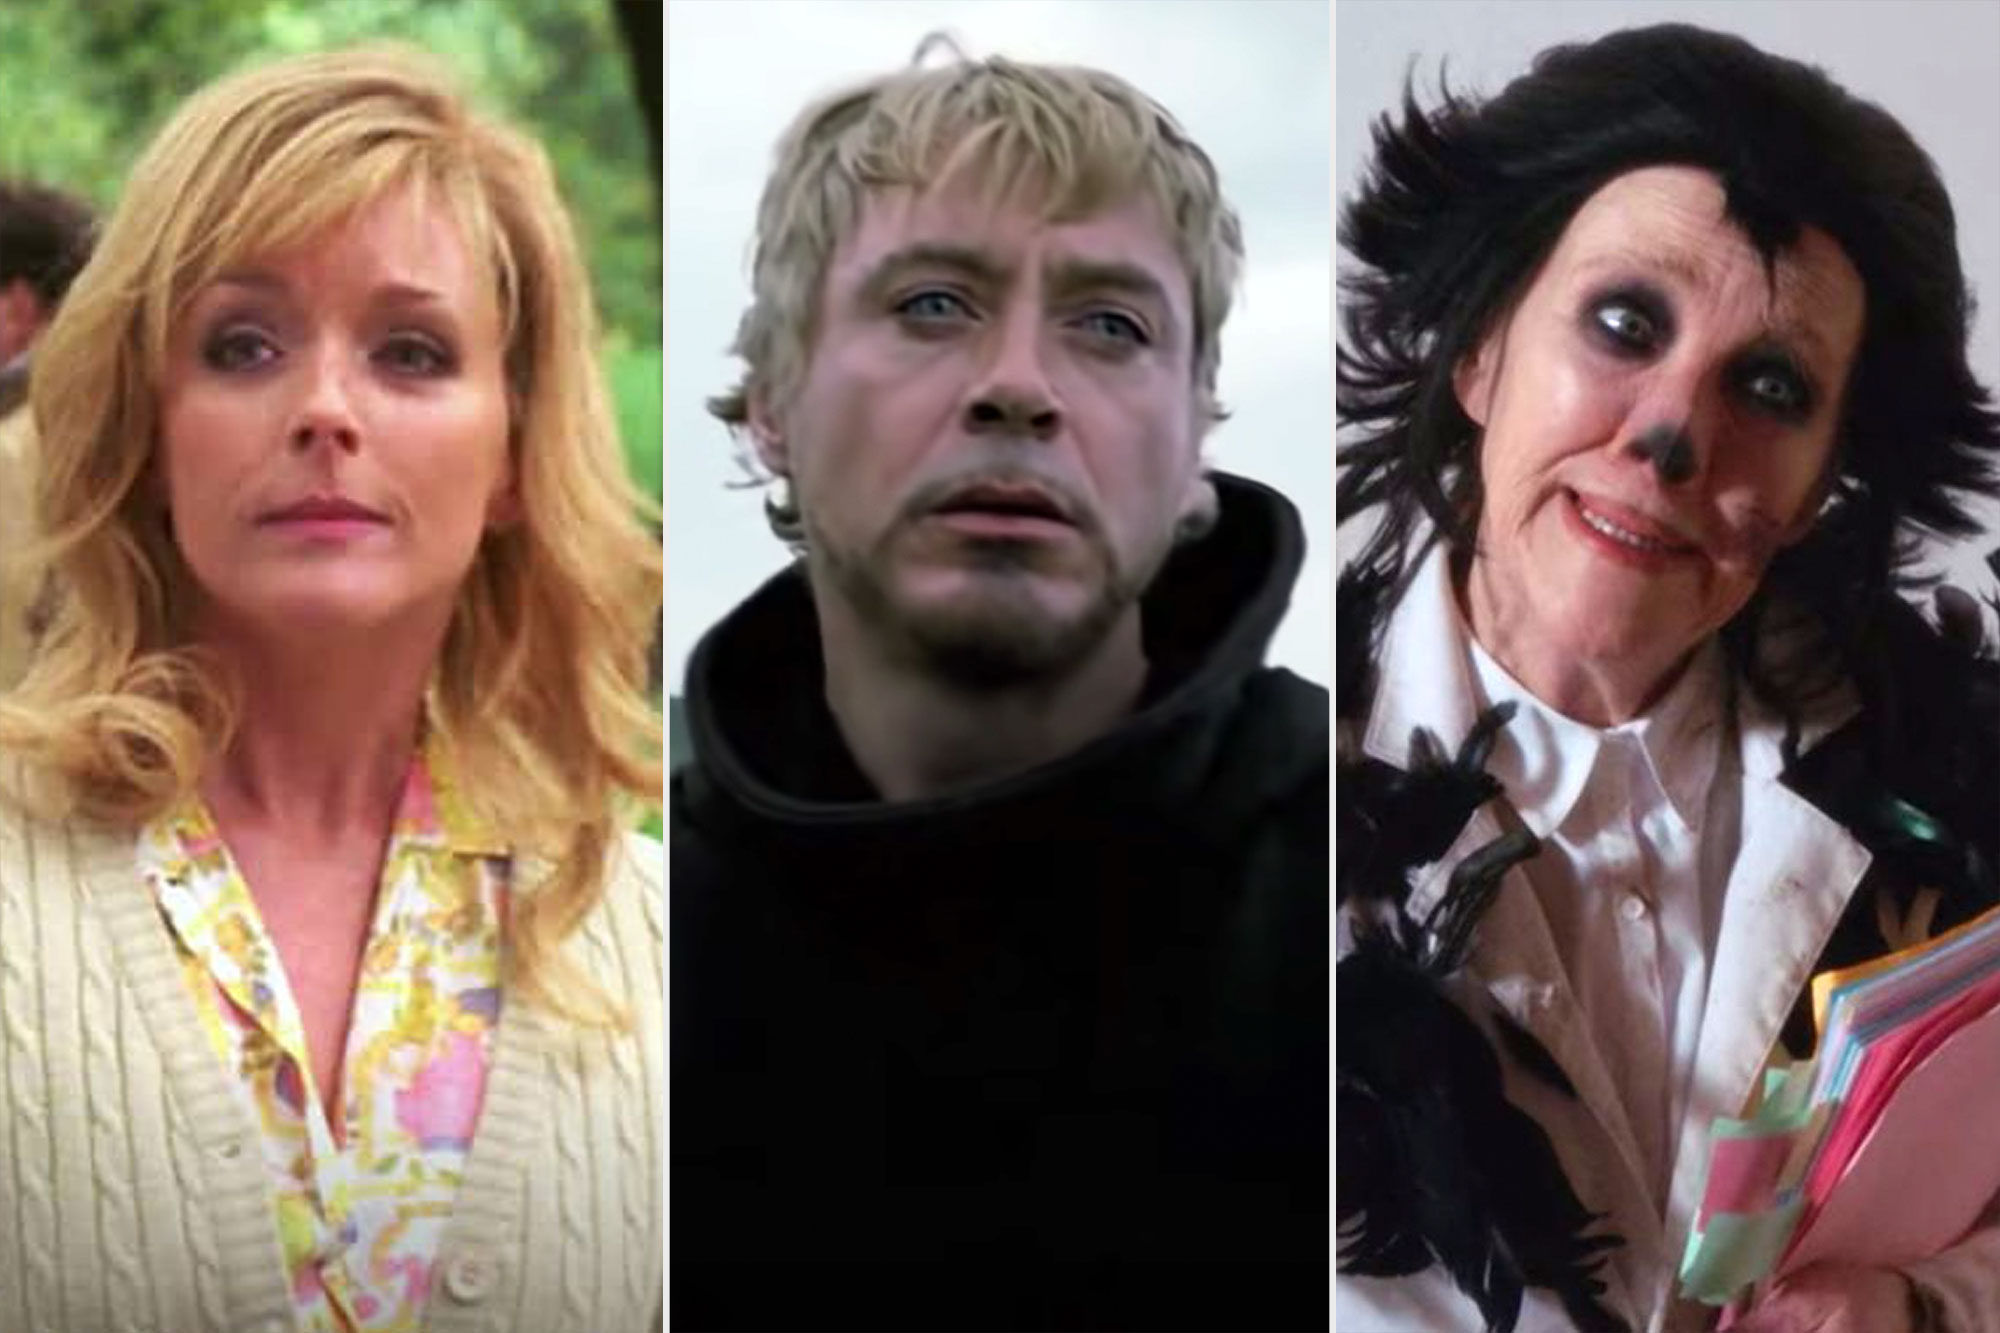 Nestflix The Rural Juror on 30 Rock, Robert Downey Jr.'s Kirk in Satan's Alley in Tropic Thunder, and Catherine O'Hara in The Crows Have Eyes in Schitt's Creek?